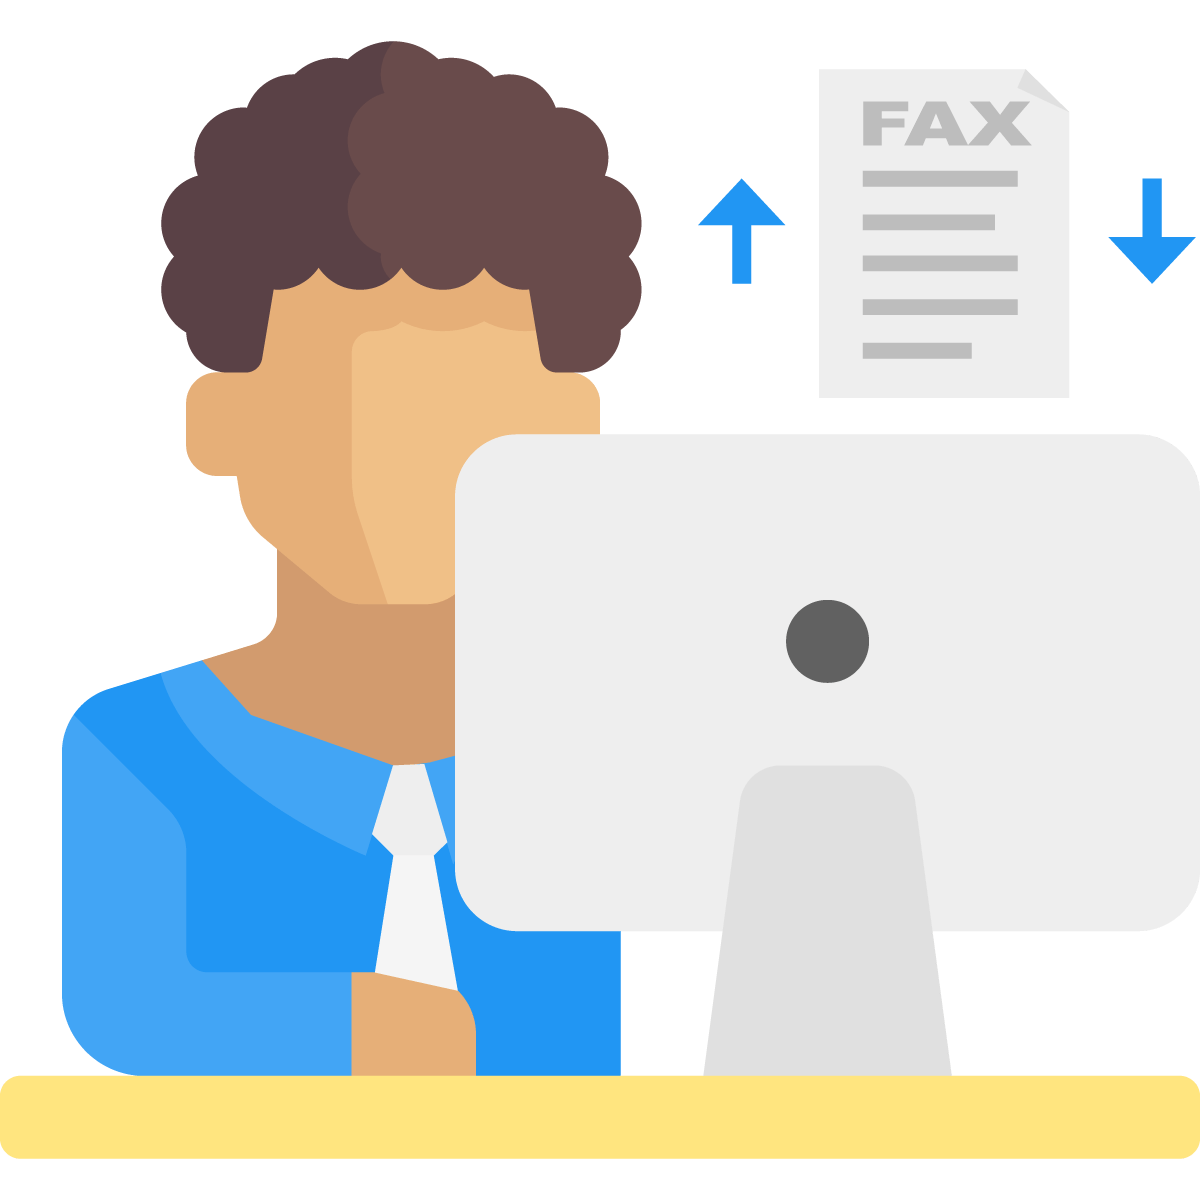 BluIP Virtual Fax - Send and Receive Fax Instantly